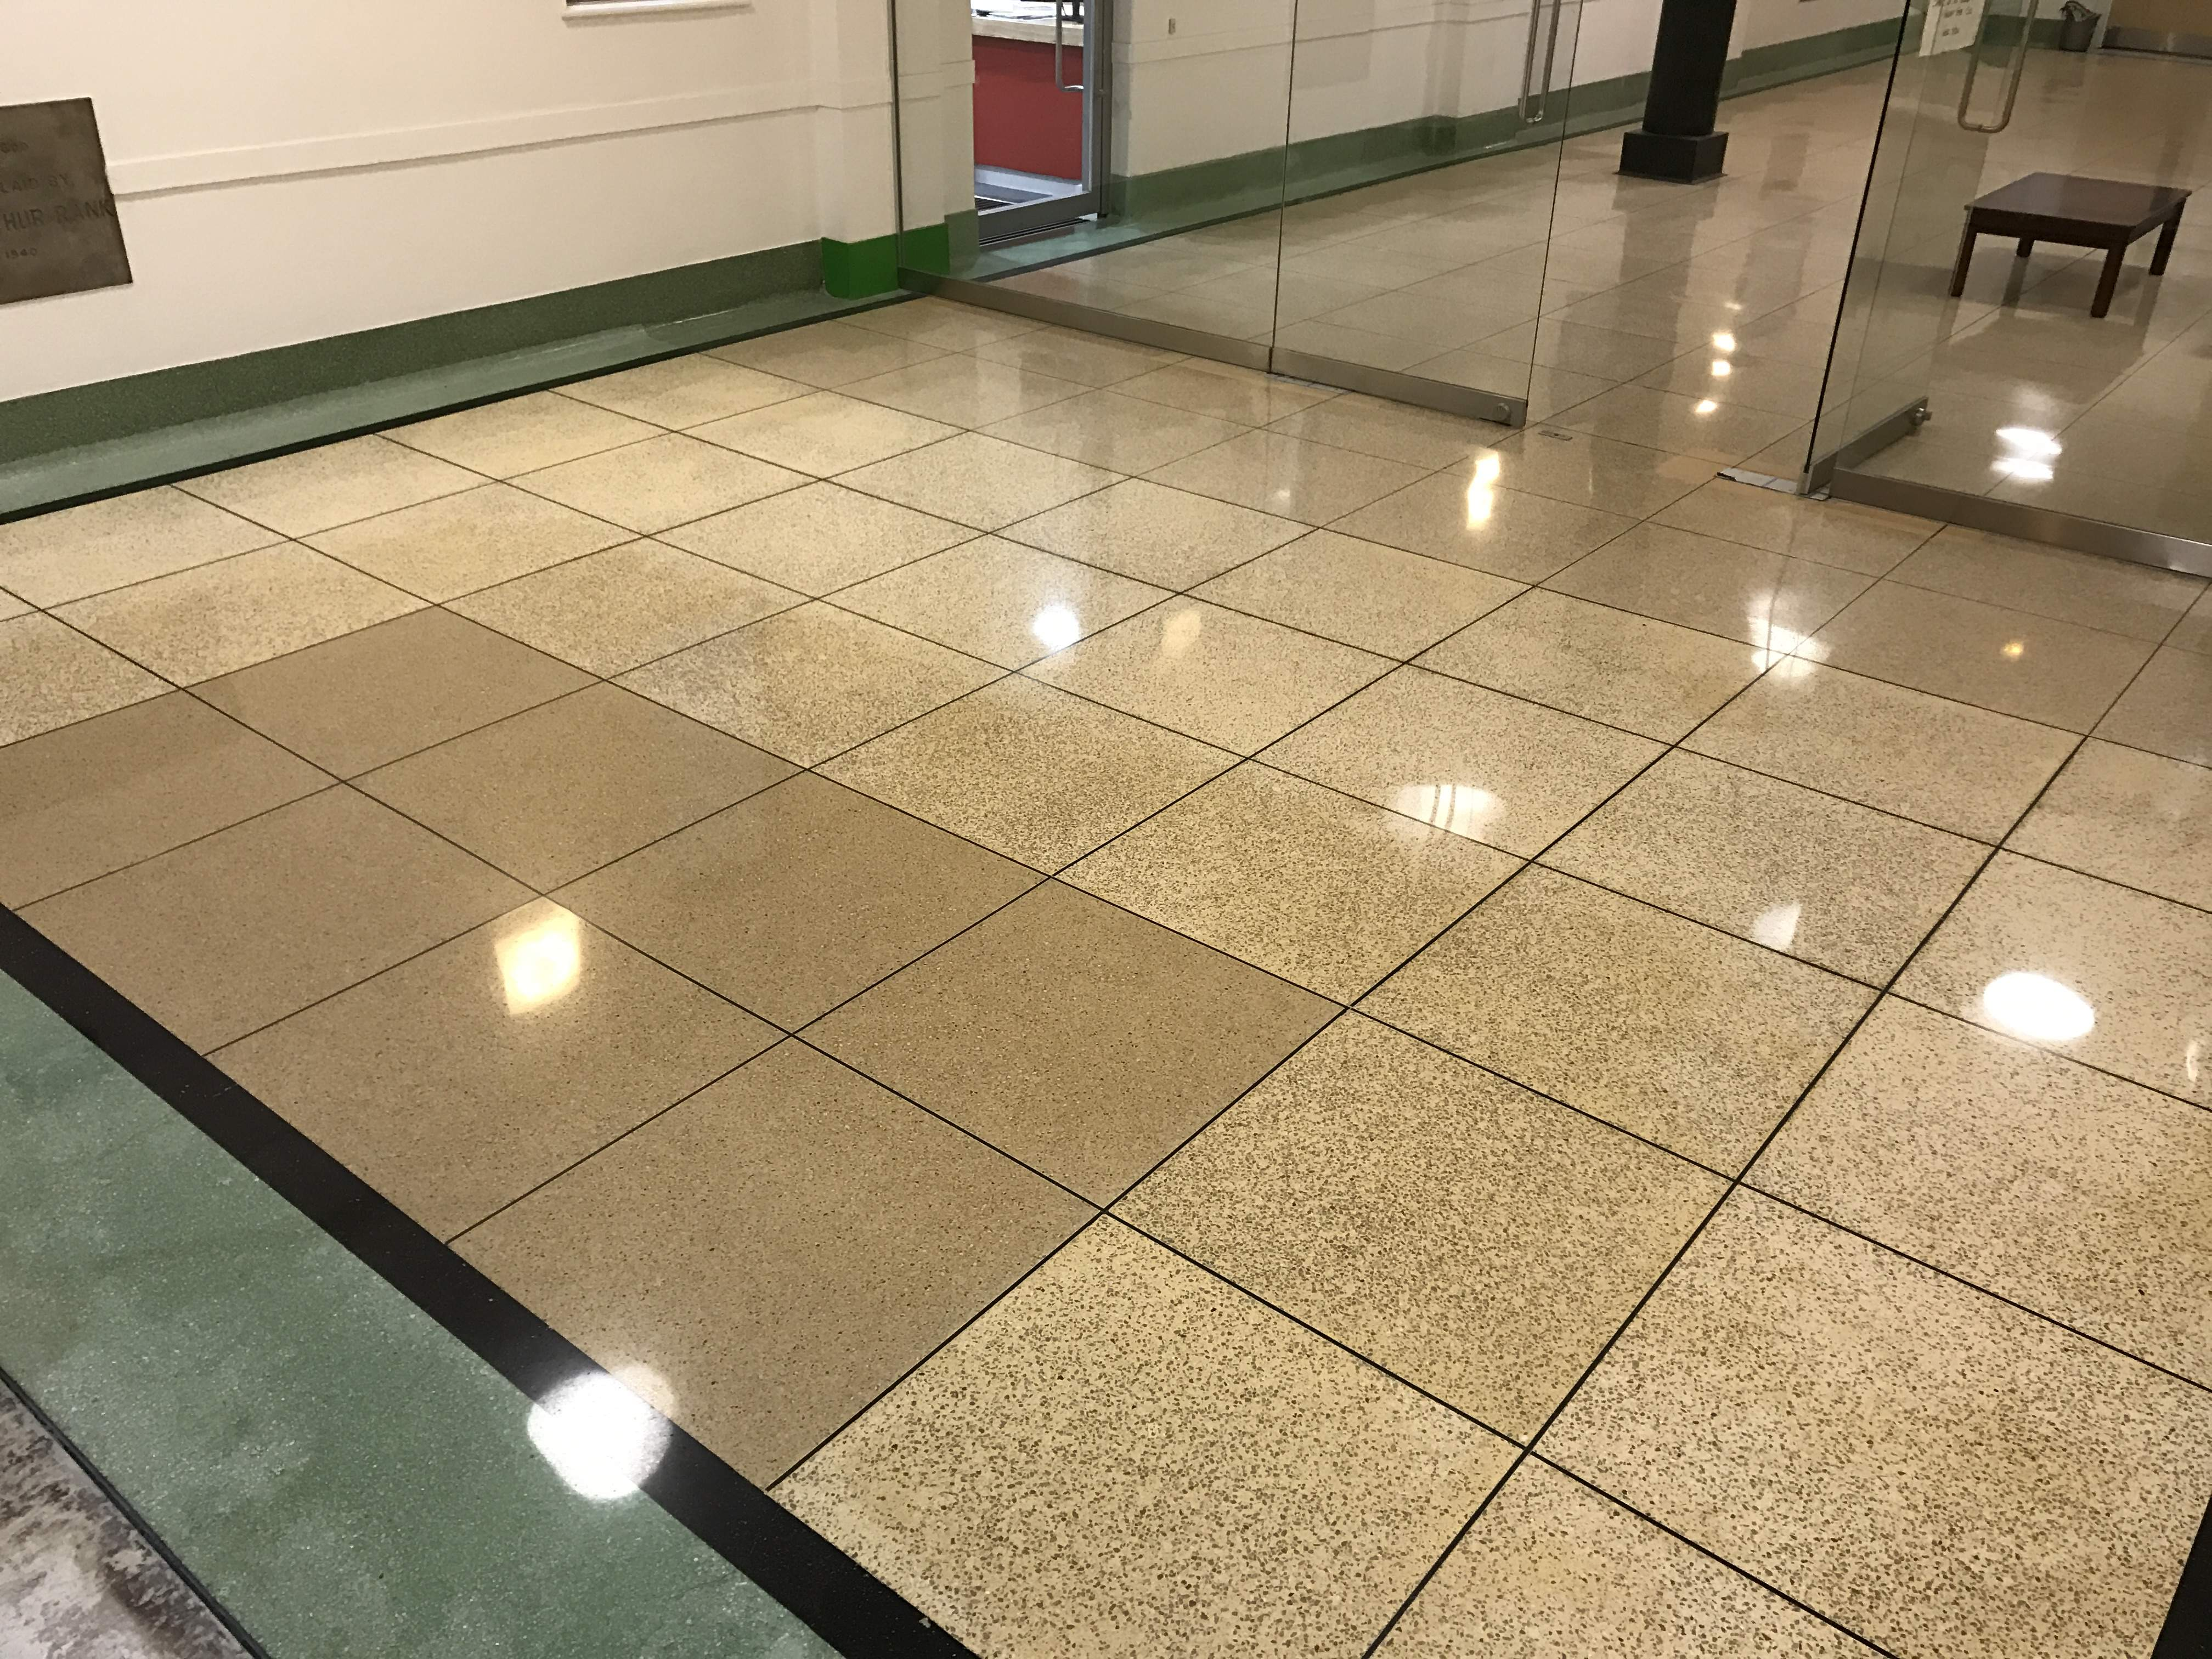 Terrazzo floor polished finish - after